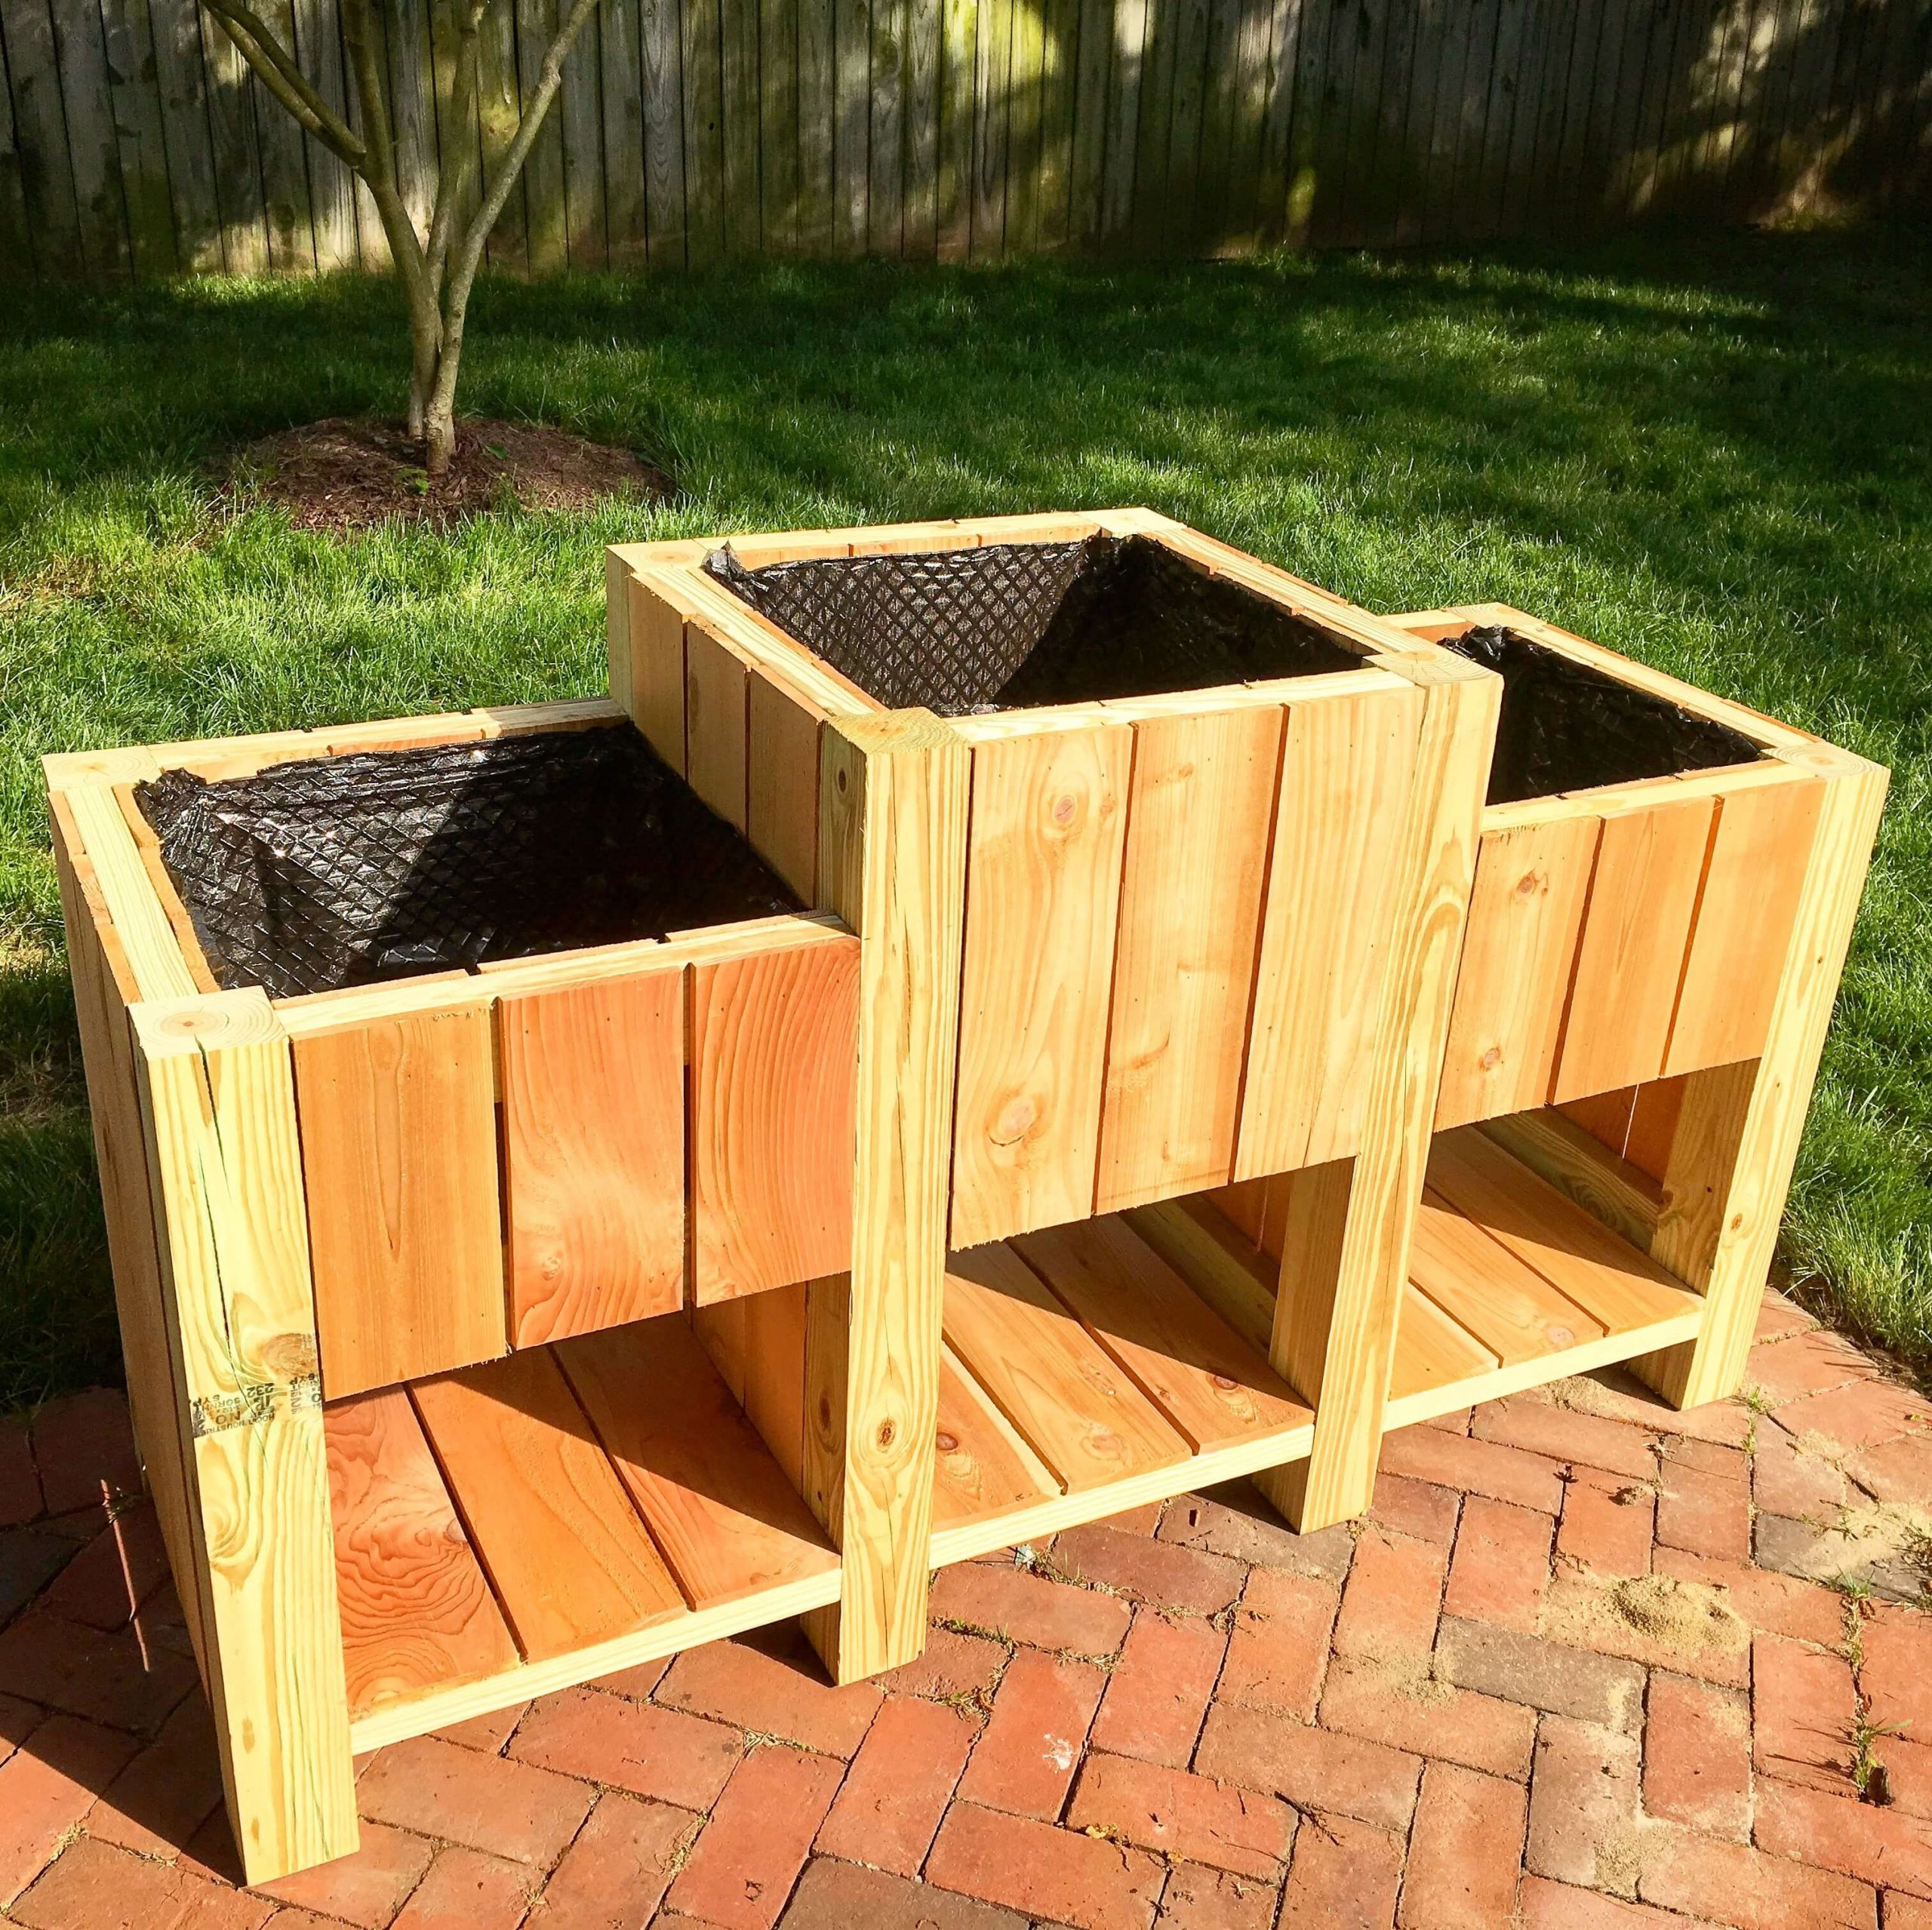 Raised Garden Boxes DIY  37 Outstanding DIY Planter Box Plans Designs and Ideas